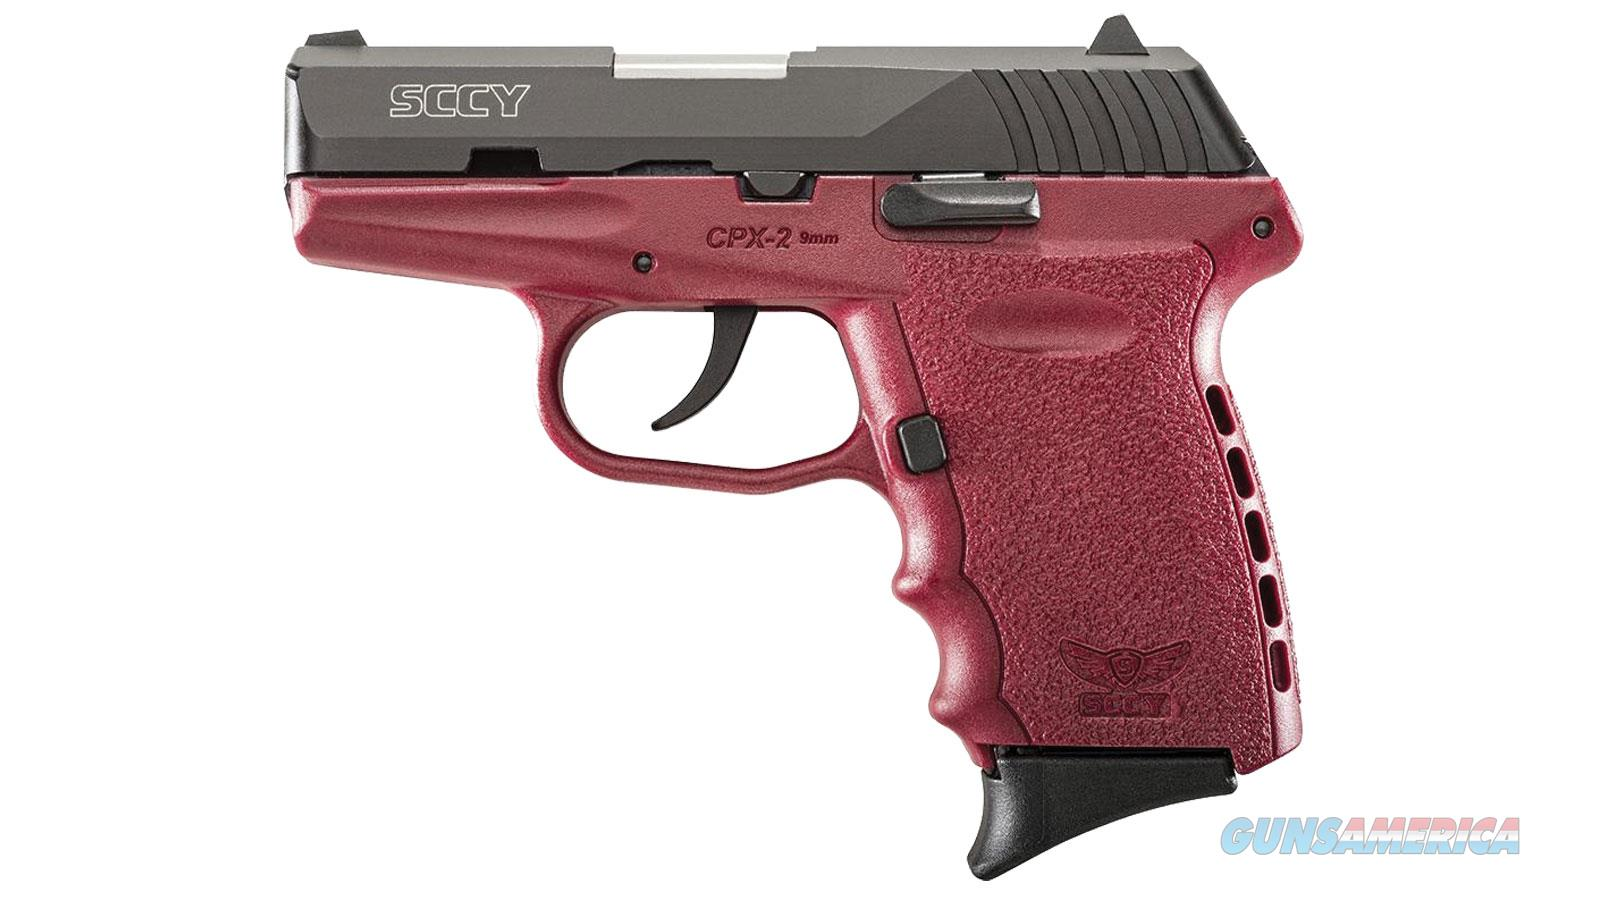 Sccy Cpx-2 Cbcr 9Mm Black/Crimson (No External Safety) CPX 2CBCR  Guns > Pistols > S Misc Pistols